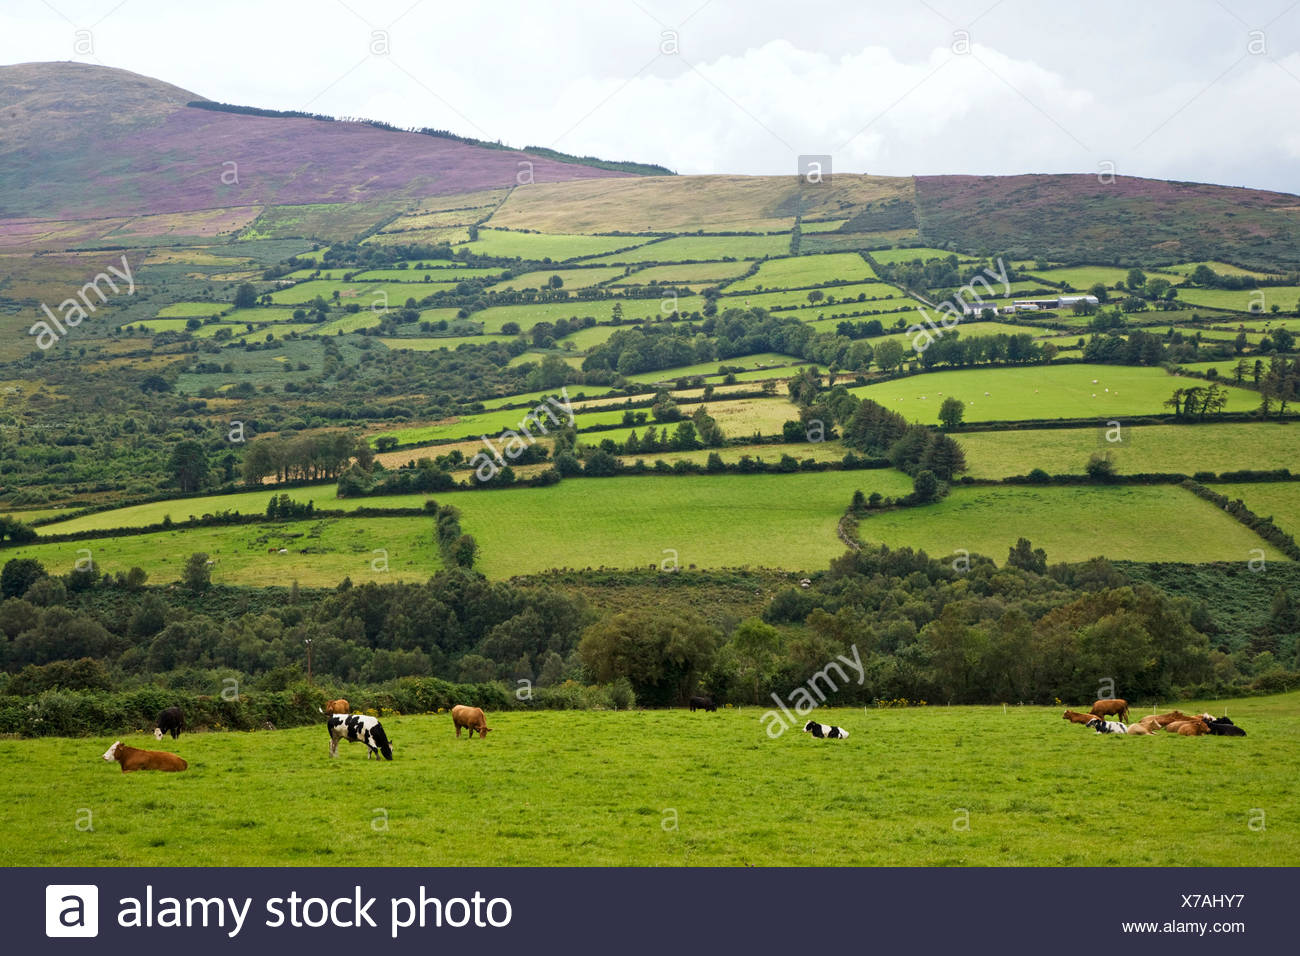 Republic of Ireland, County Carlow, Mount Leinster and district, cows grazing and lying down in field - Stock Image